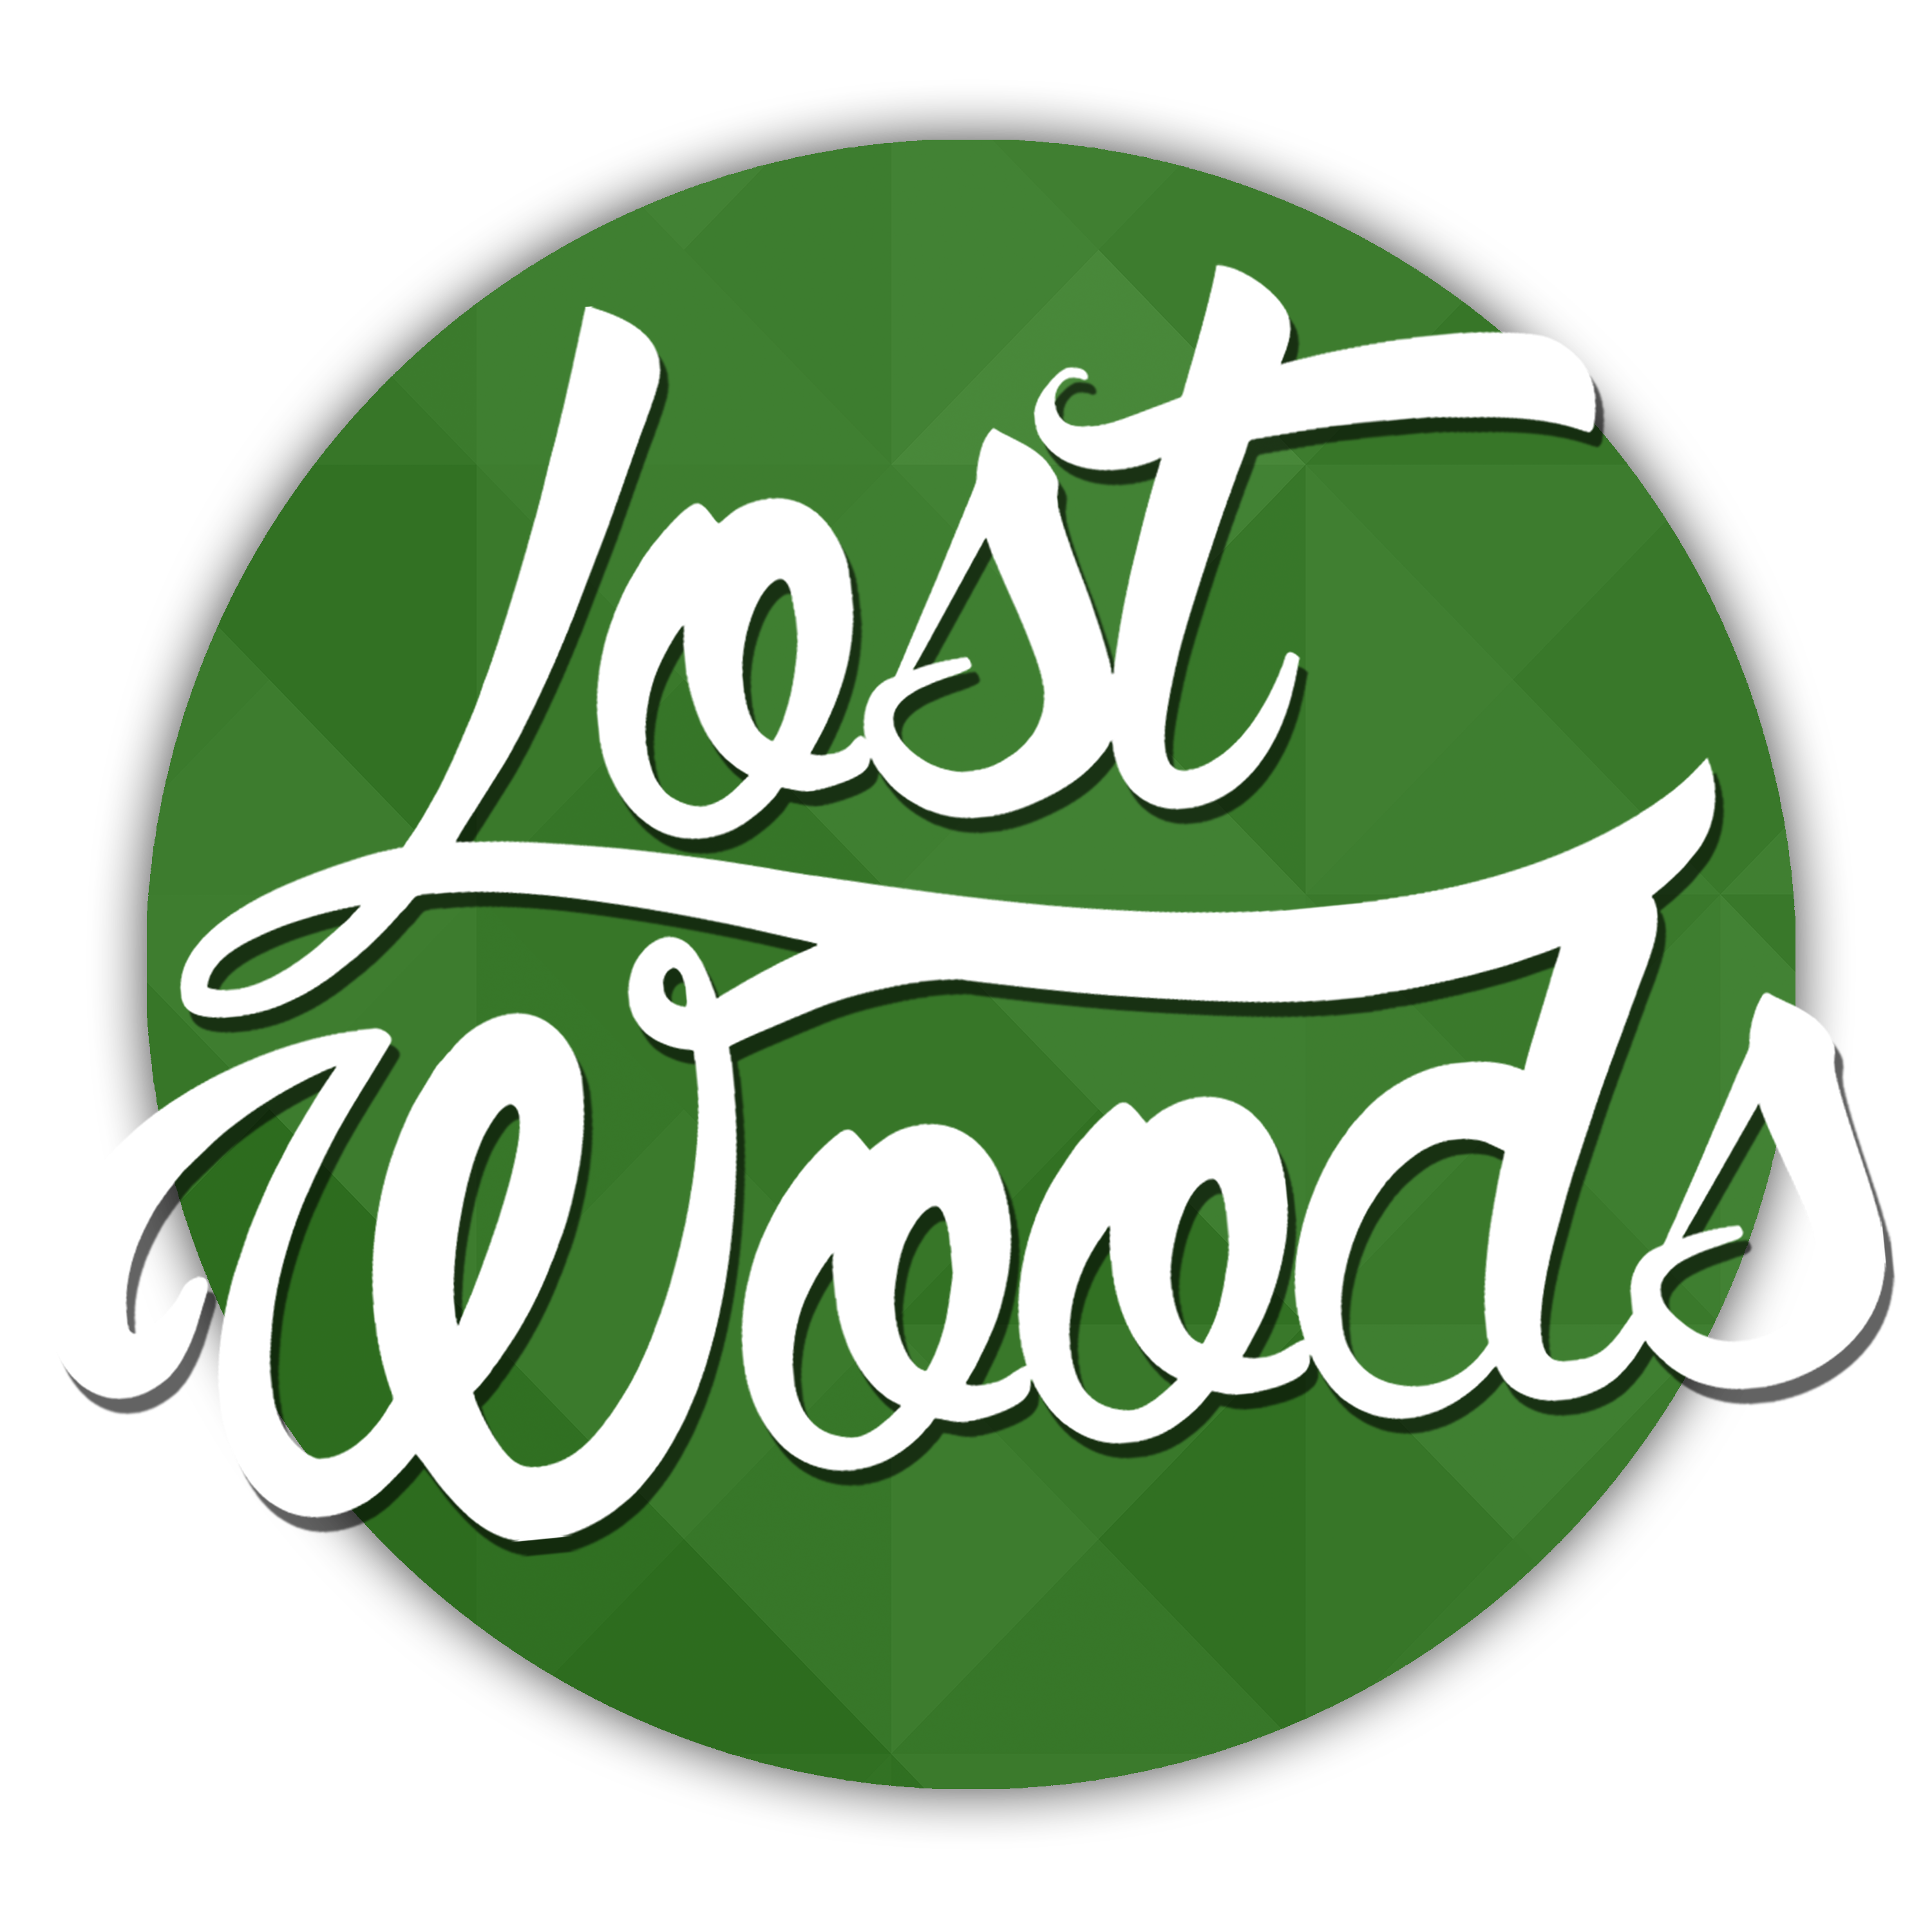 Lost Woods